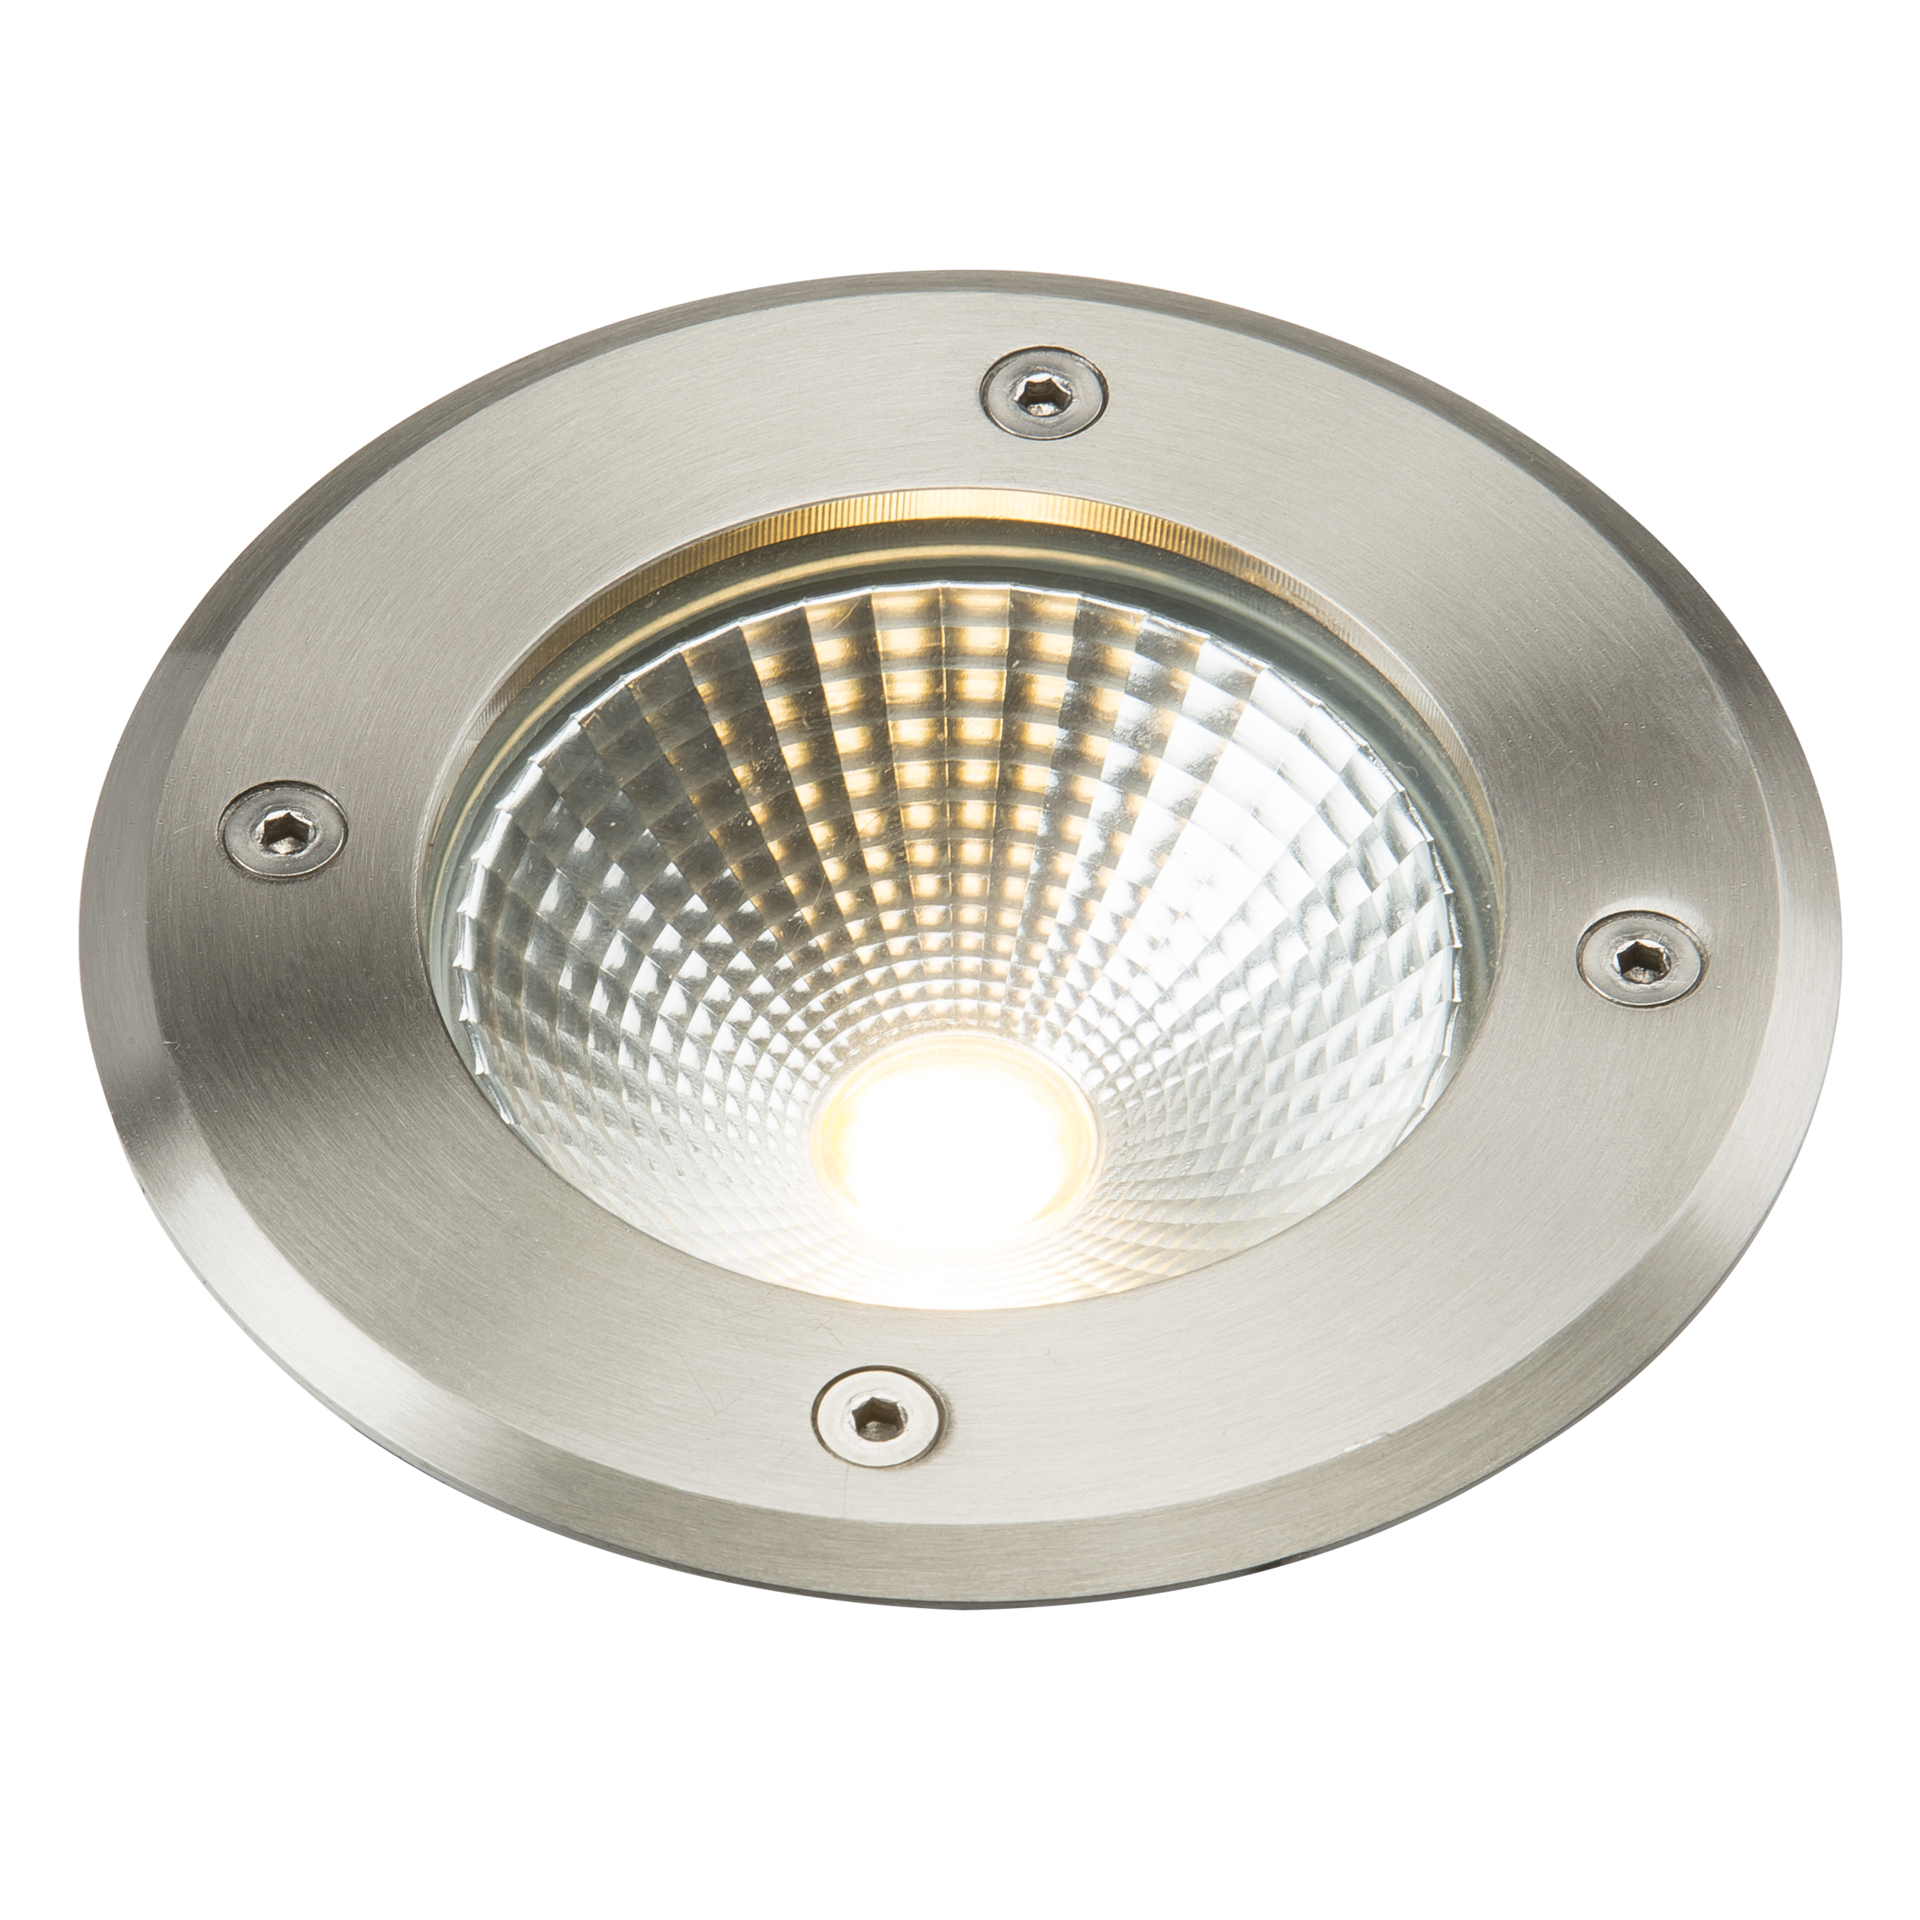 230V IP65 6W LED RECESSED GROUND LIGHT